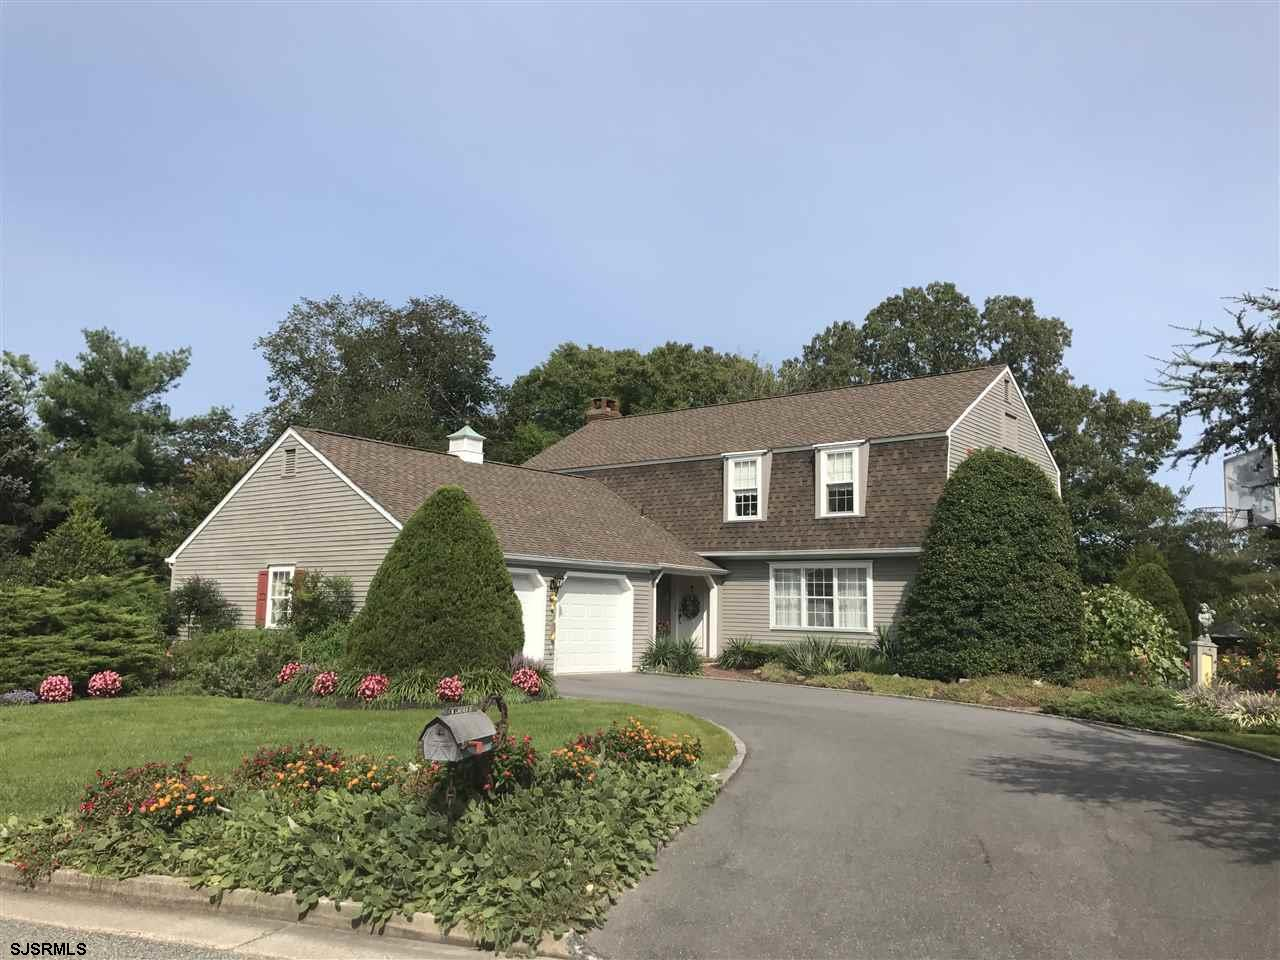 4 W Lakeview Drive, Egg Harbor Township, NJ 08234